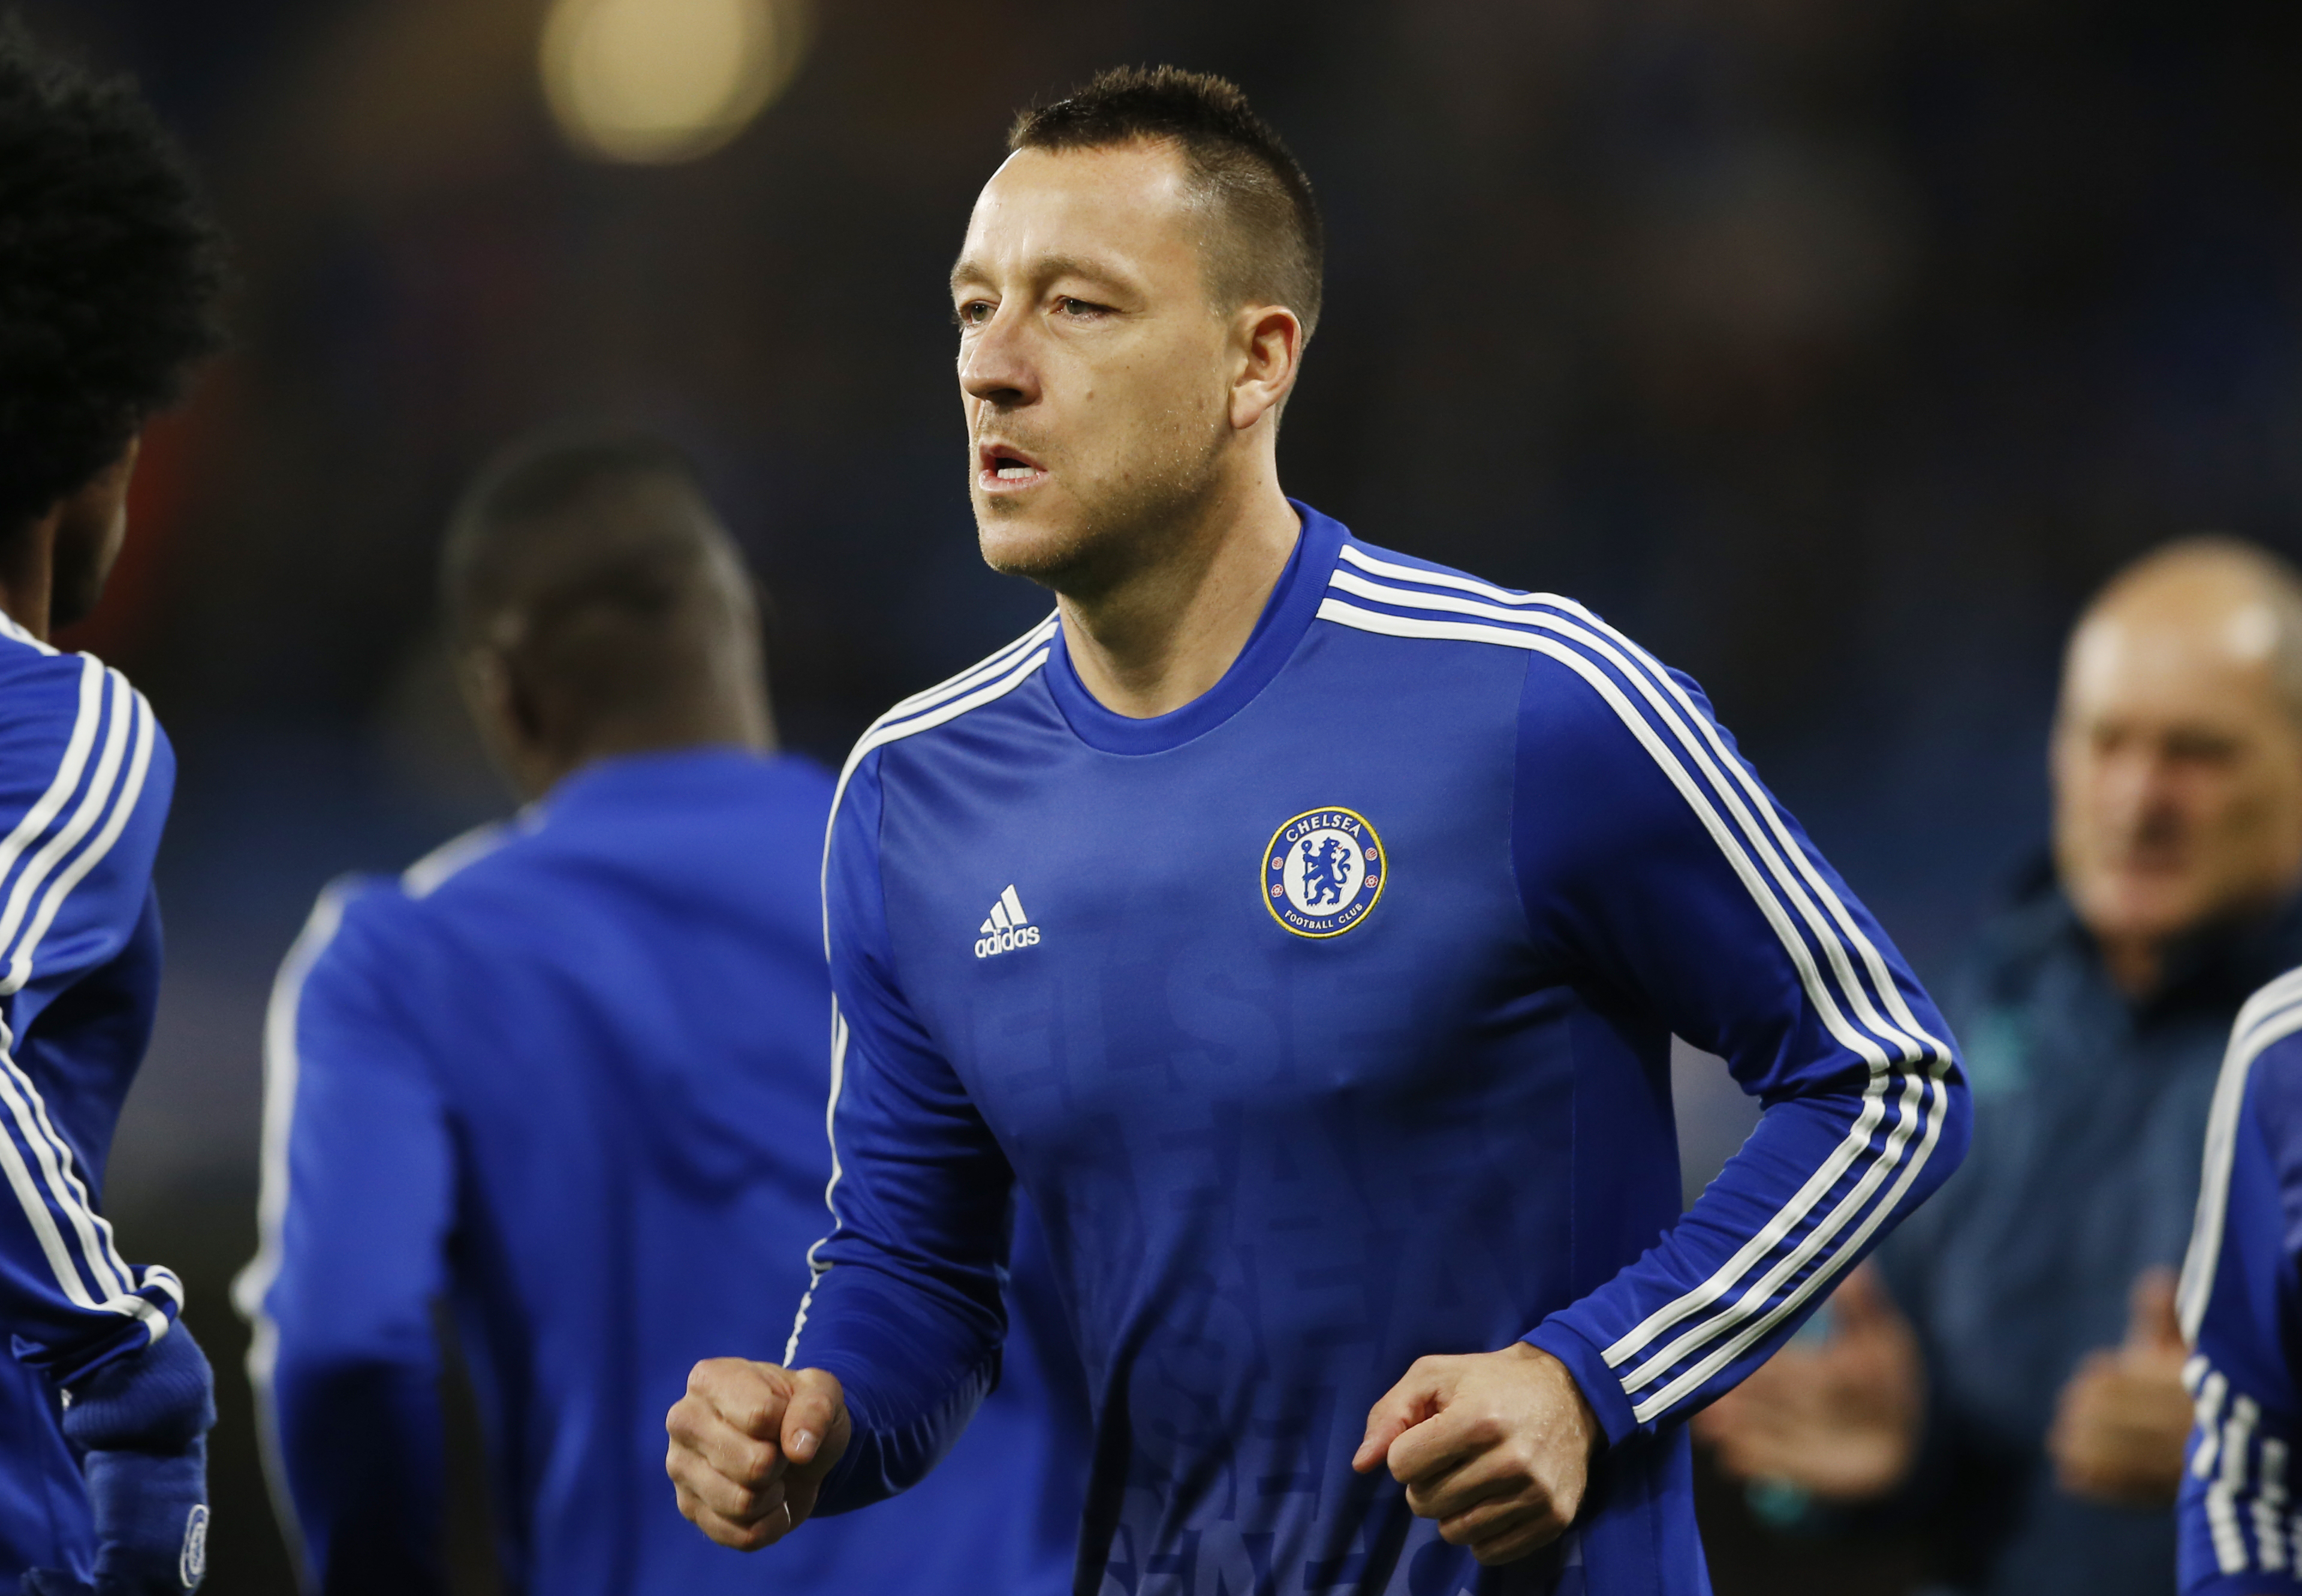 Chelsea's John Terry warms up before the match at Stamford Bridge on December 9, 2015. Photo: Reuters